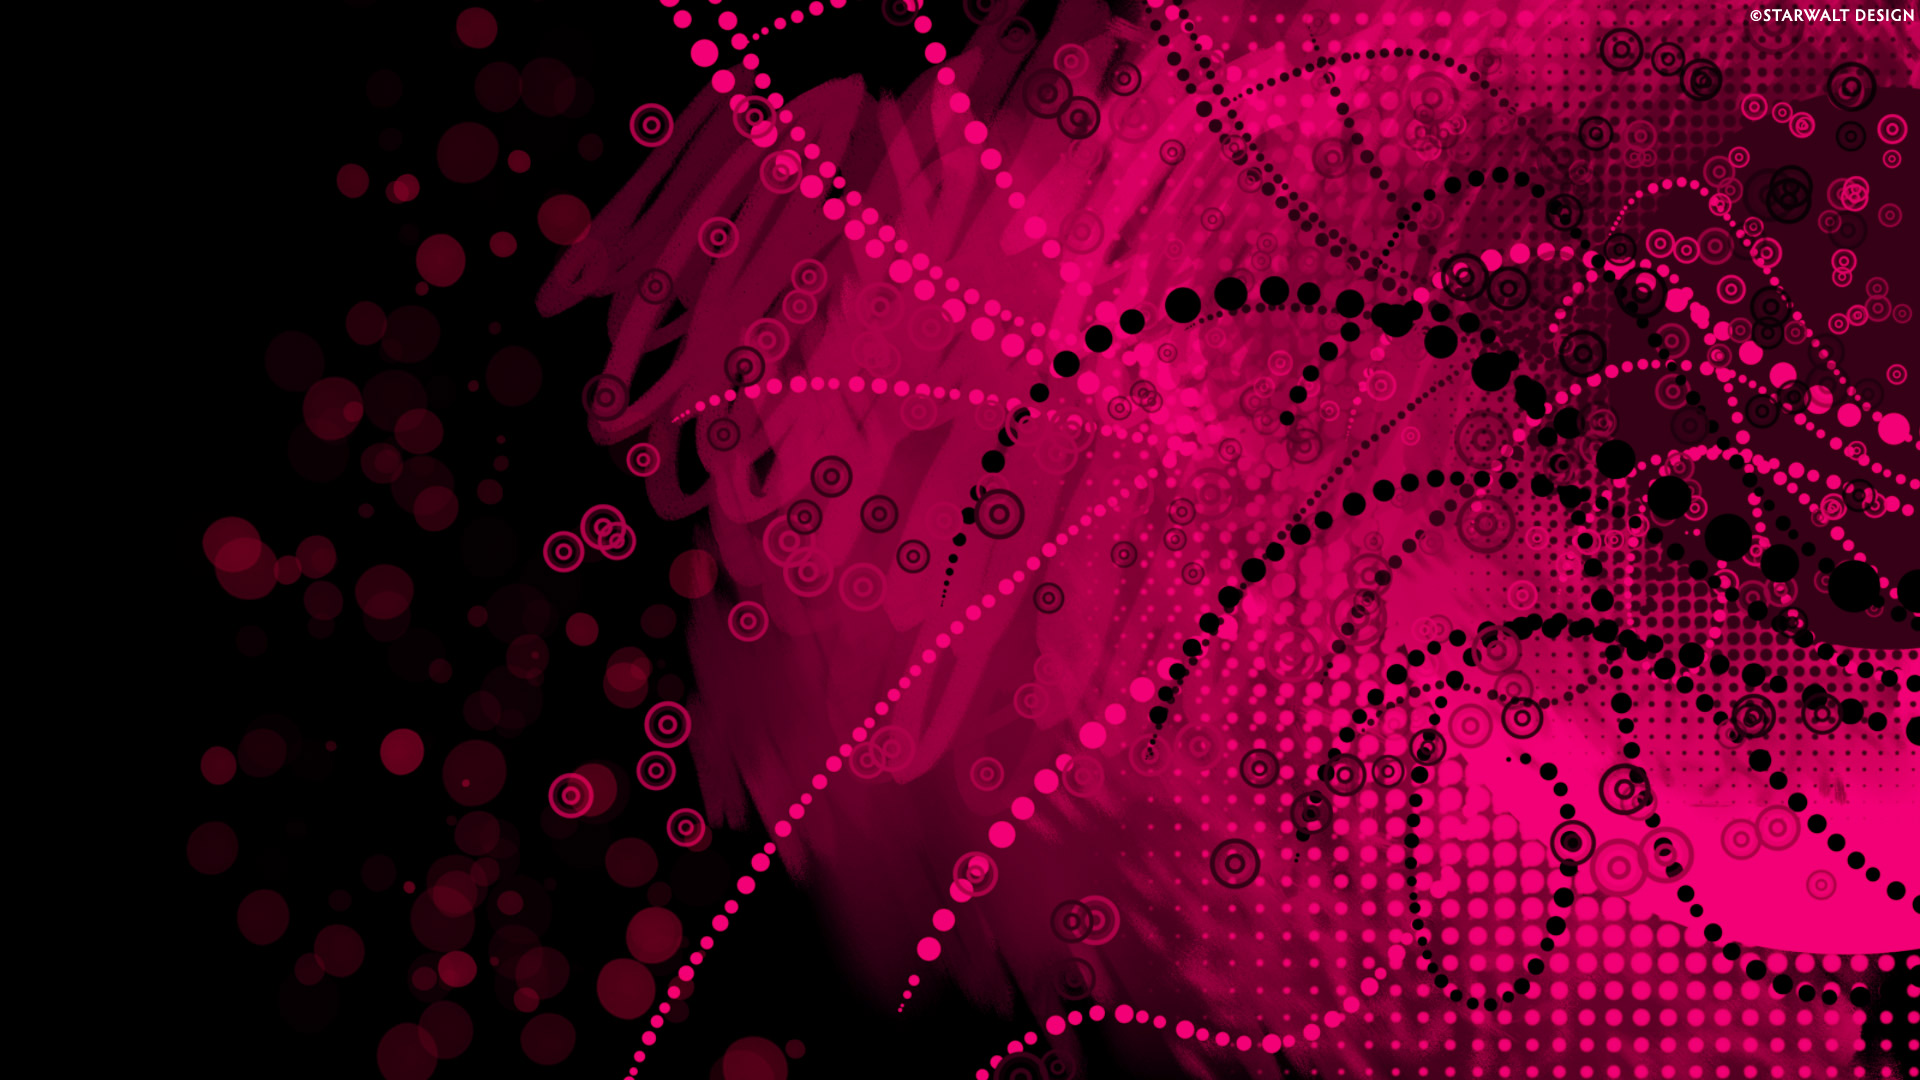 Hd Abstract Free Free Wallpaper 1080p Wallpaper